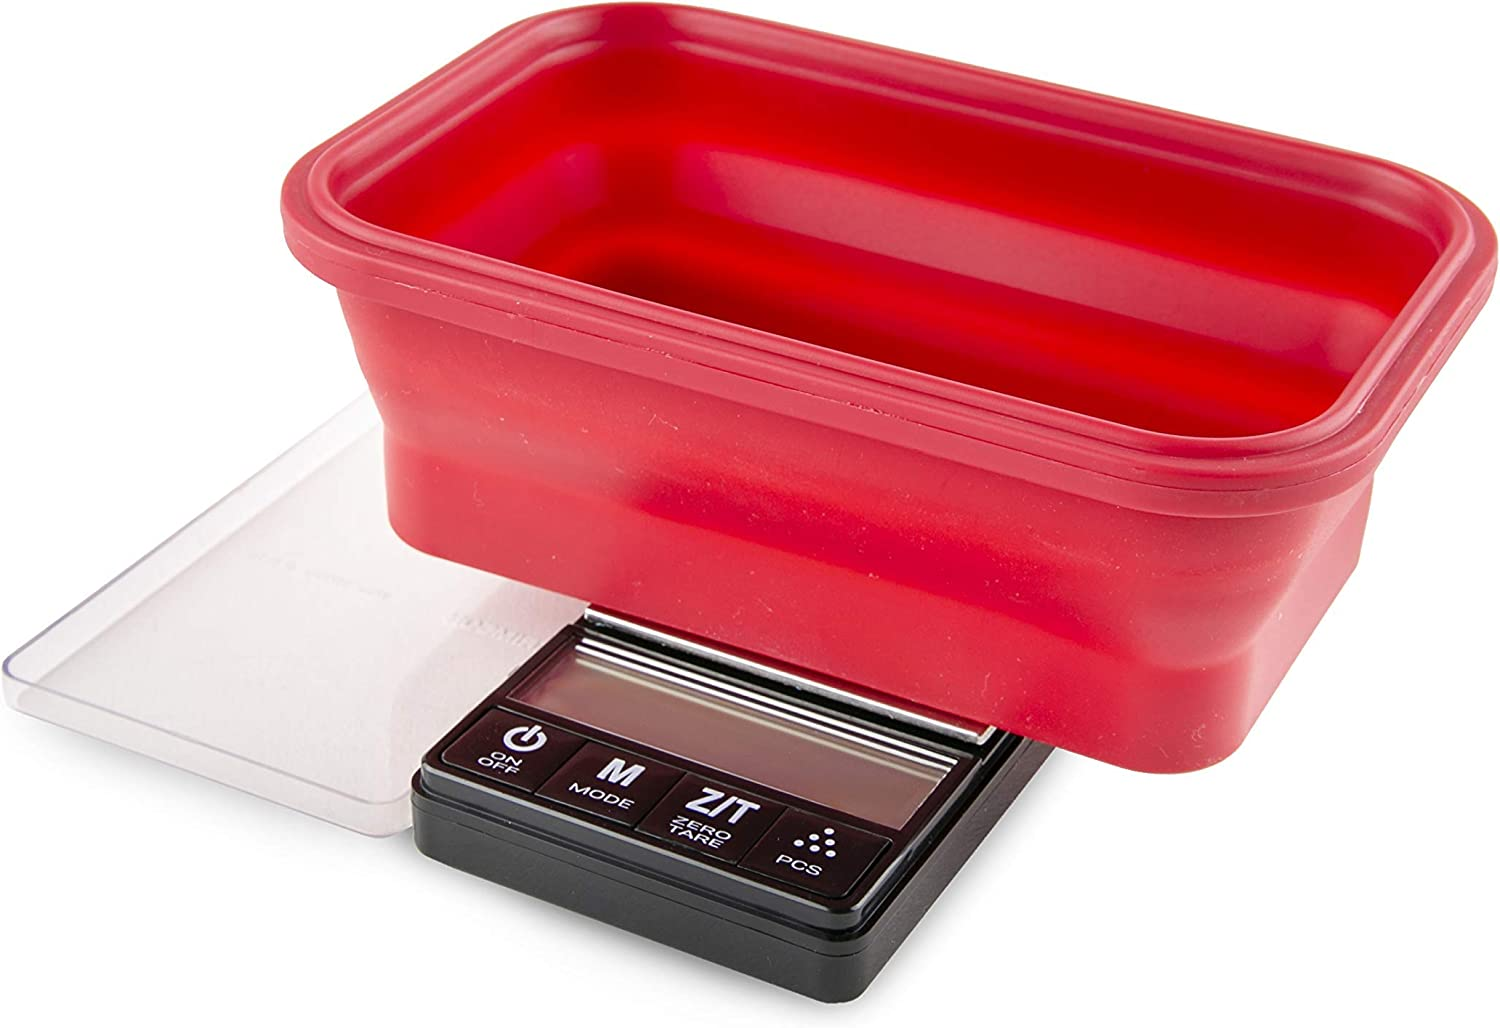 Truweigh - CRIMSON Collapsible Bowl Scale (1000g x 0.1g - Red/Black) and Long Lasting Portable Grams Scale - Kitchen Scale - Food Scale - Postal Scale - Herb Scale - Meal Prep Scale